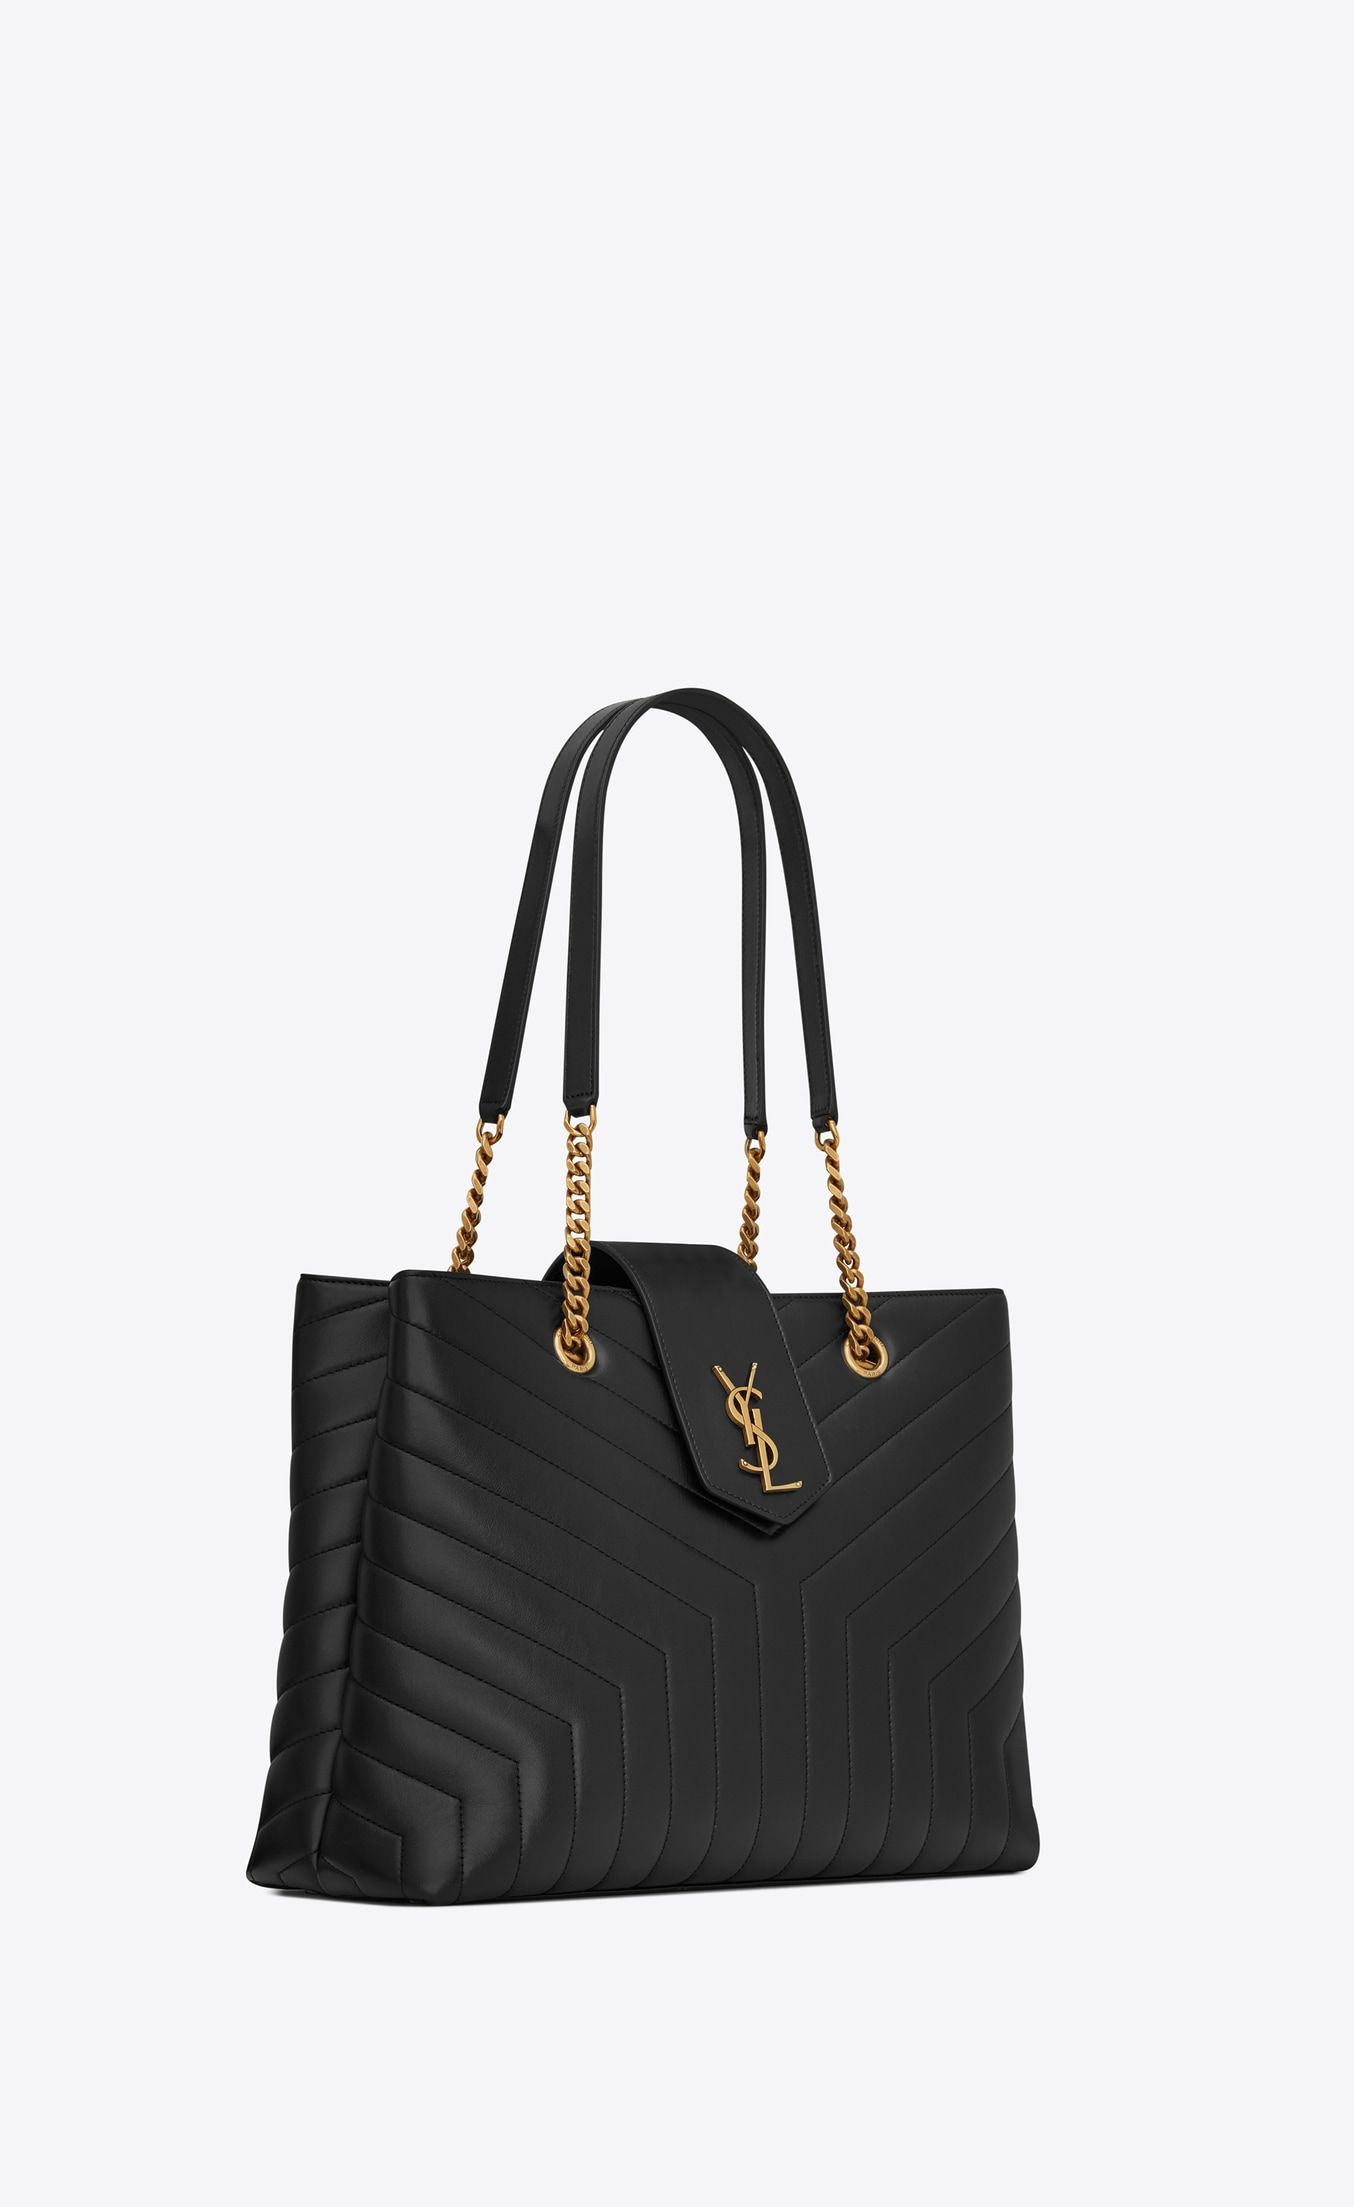 6837a869be Loulou Large shopping bag in matelassé